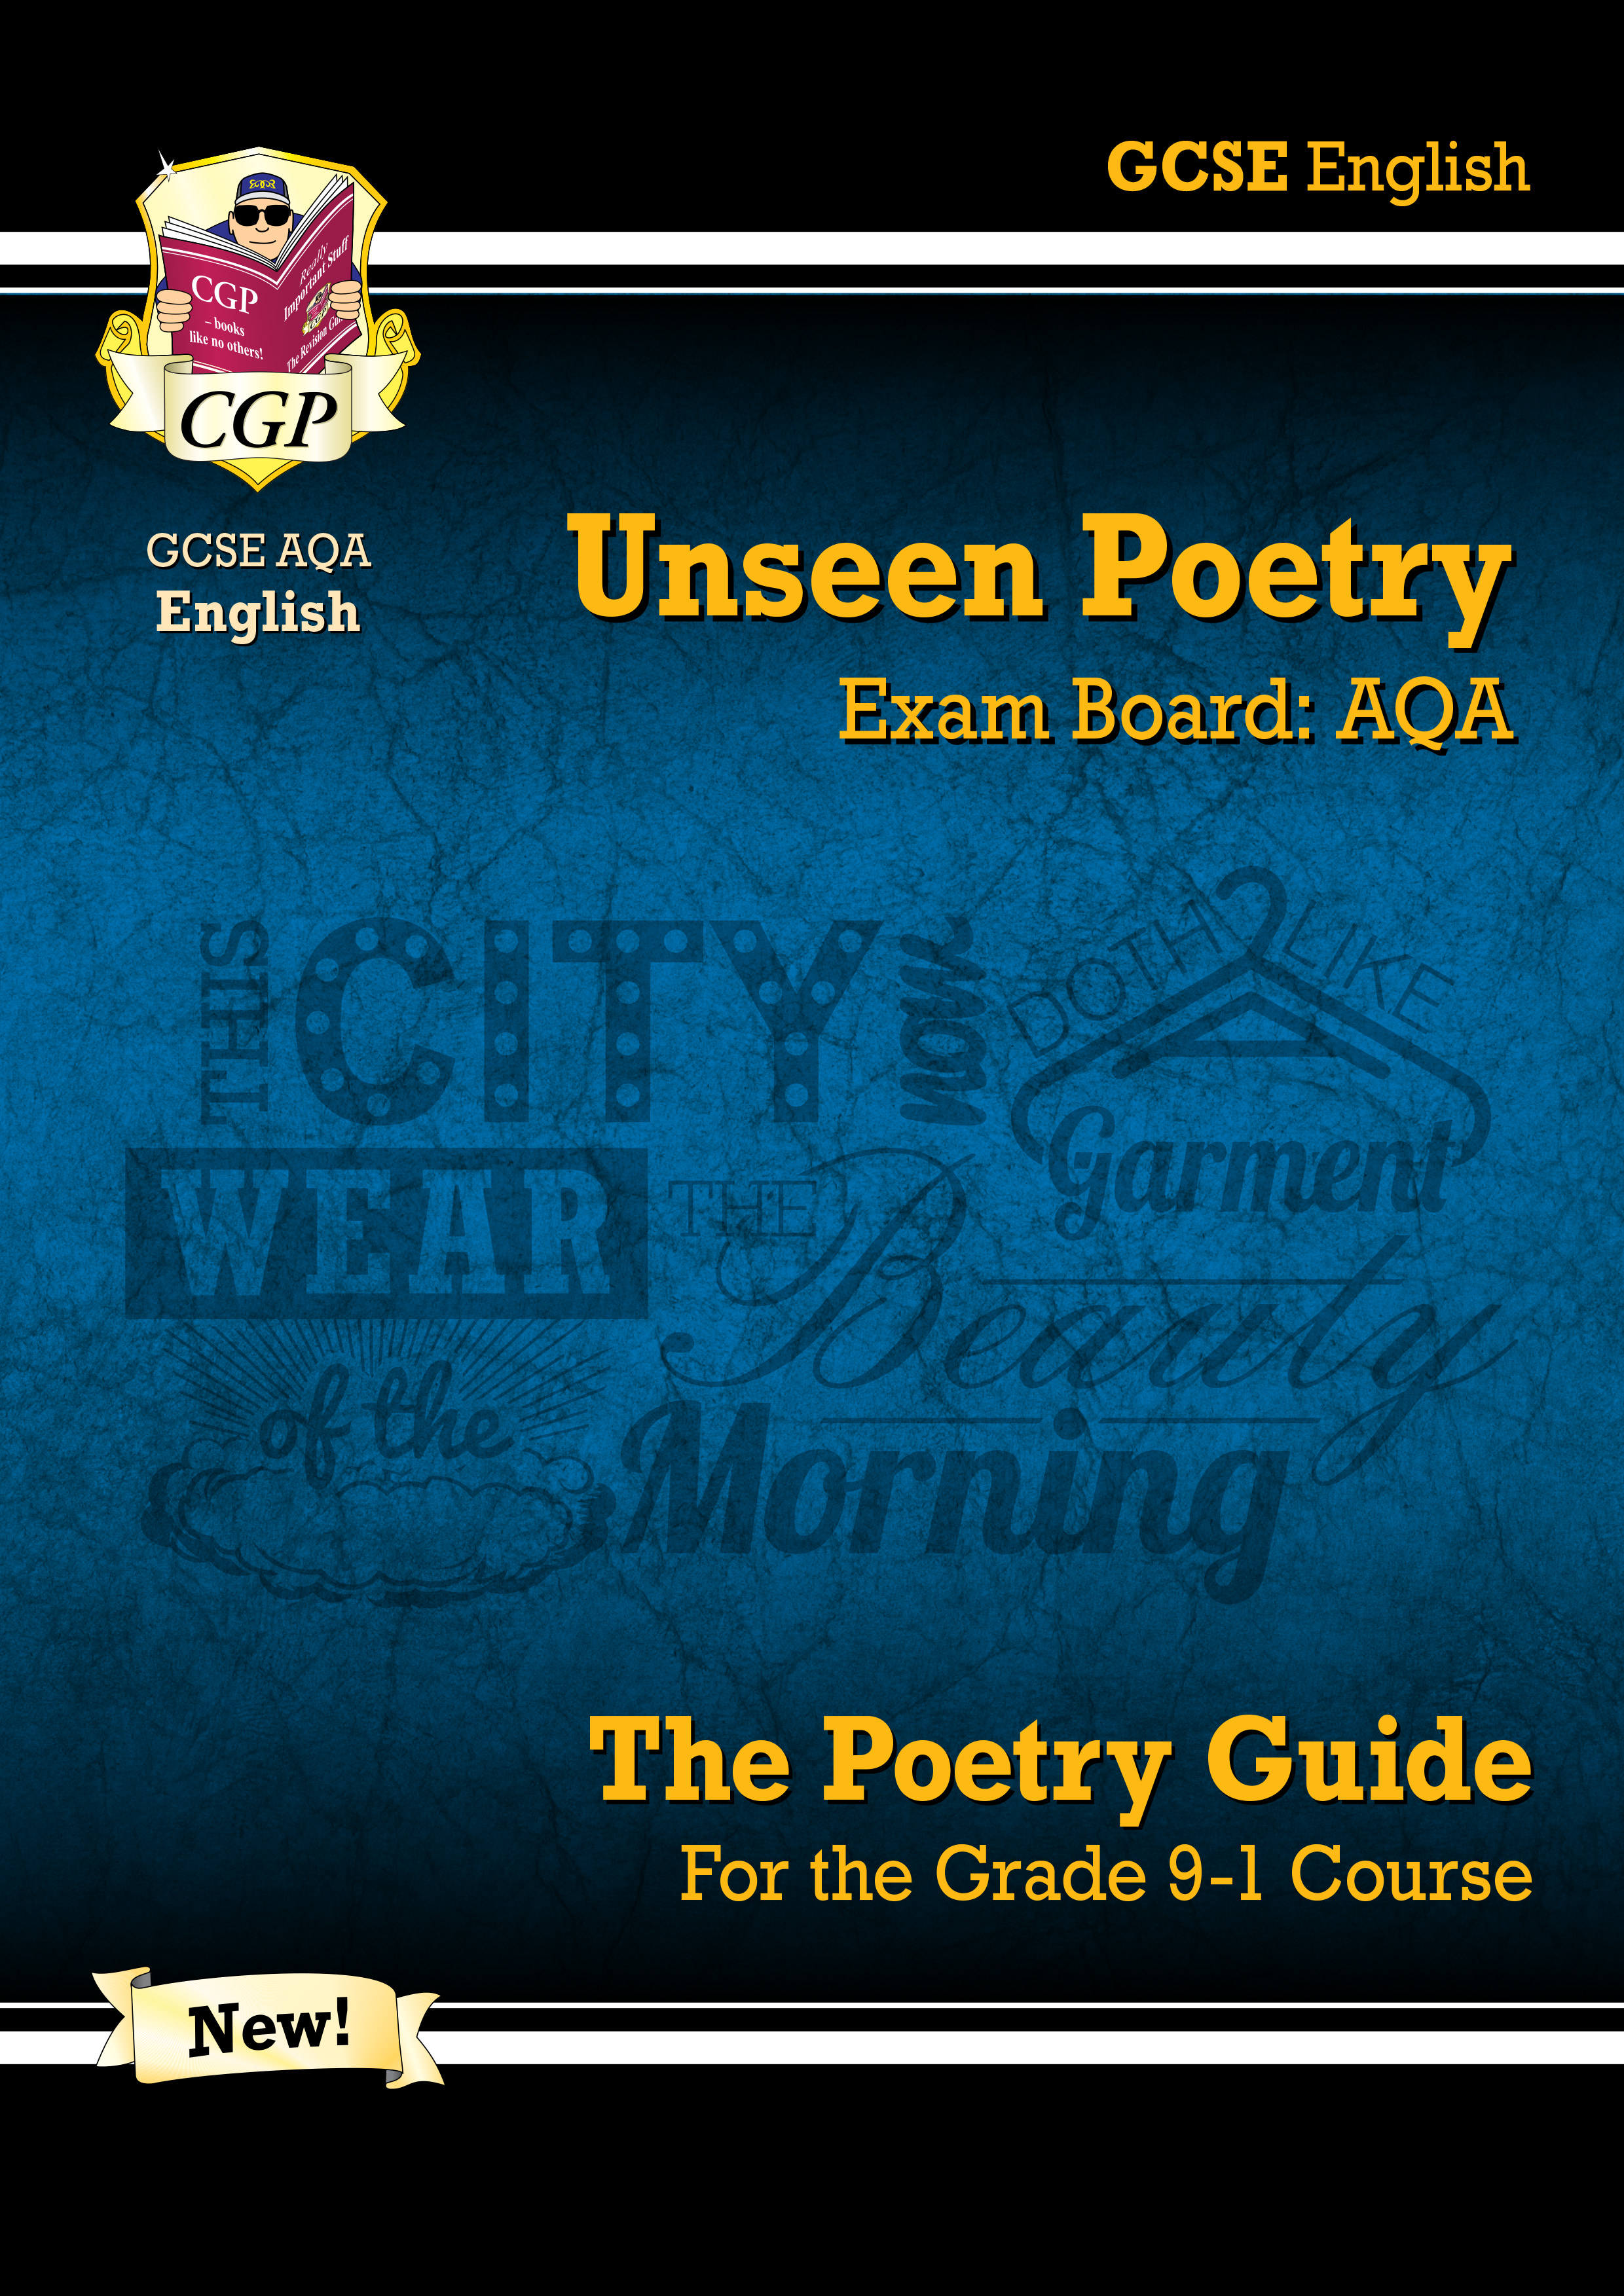 EUAR42DK - New Grade 9-1 GCSE English Literature AQA Unseen Poetry Guide - Book 1